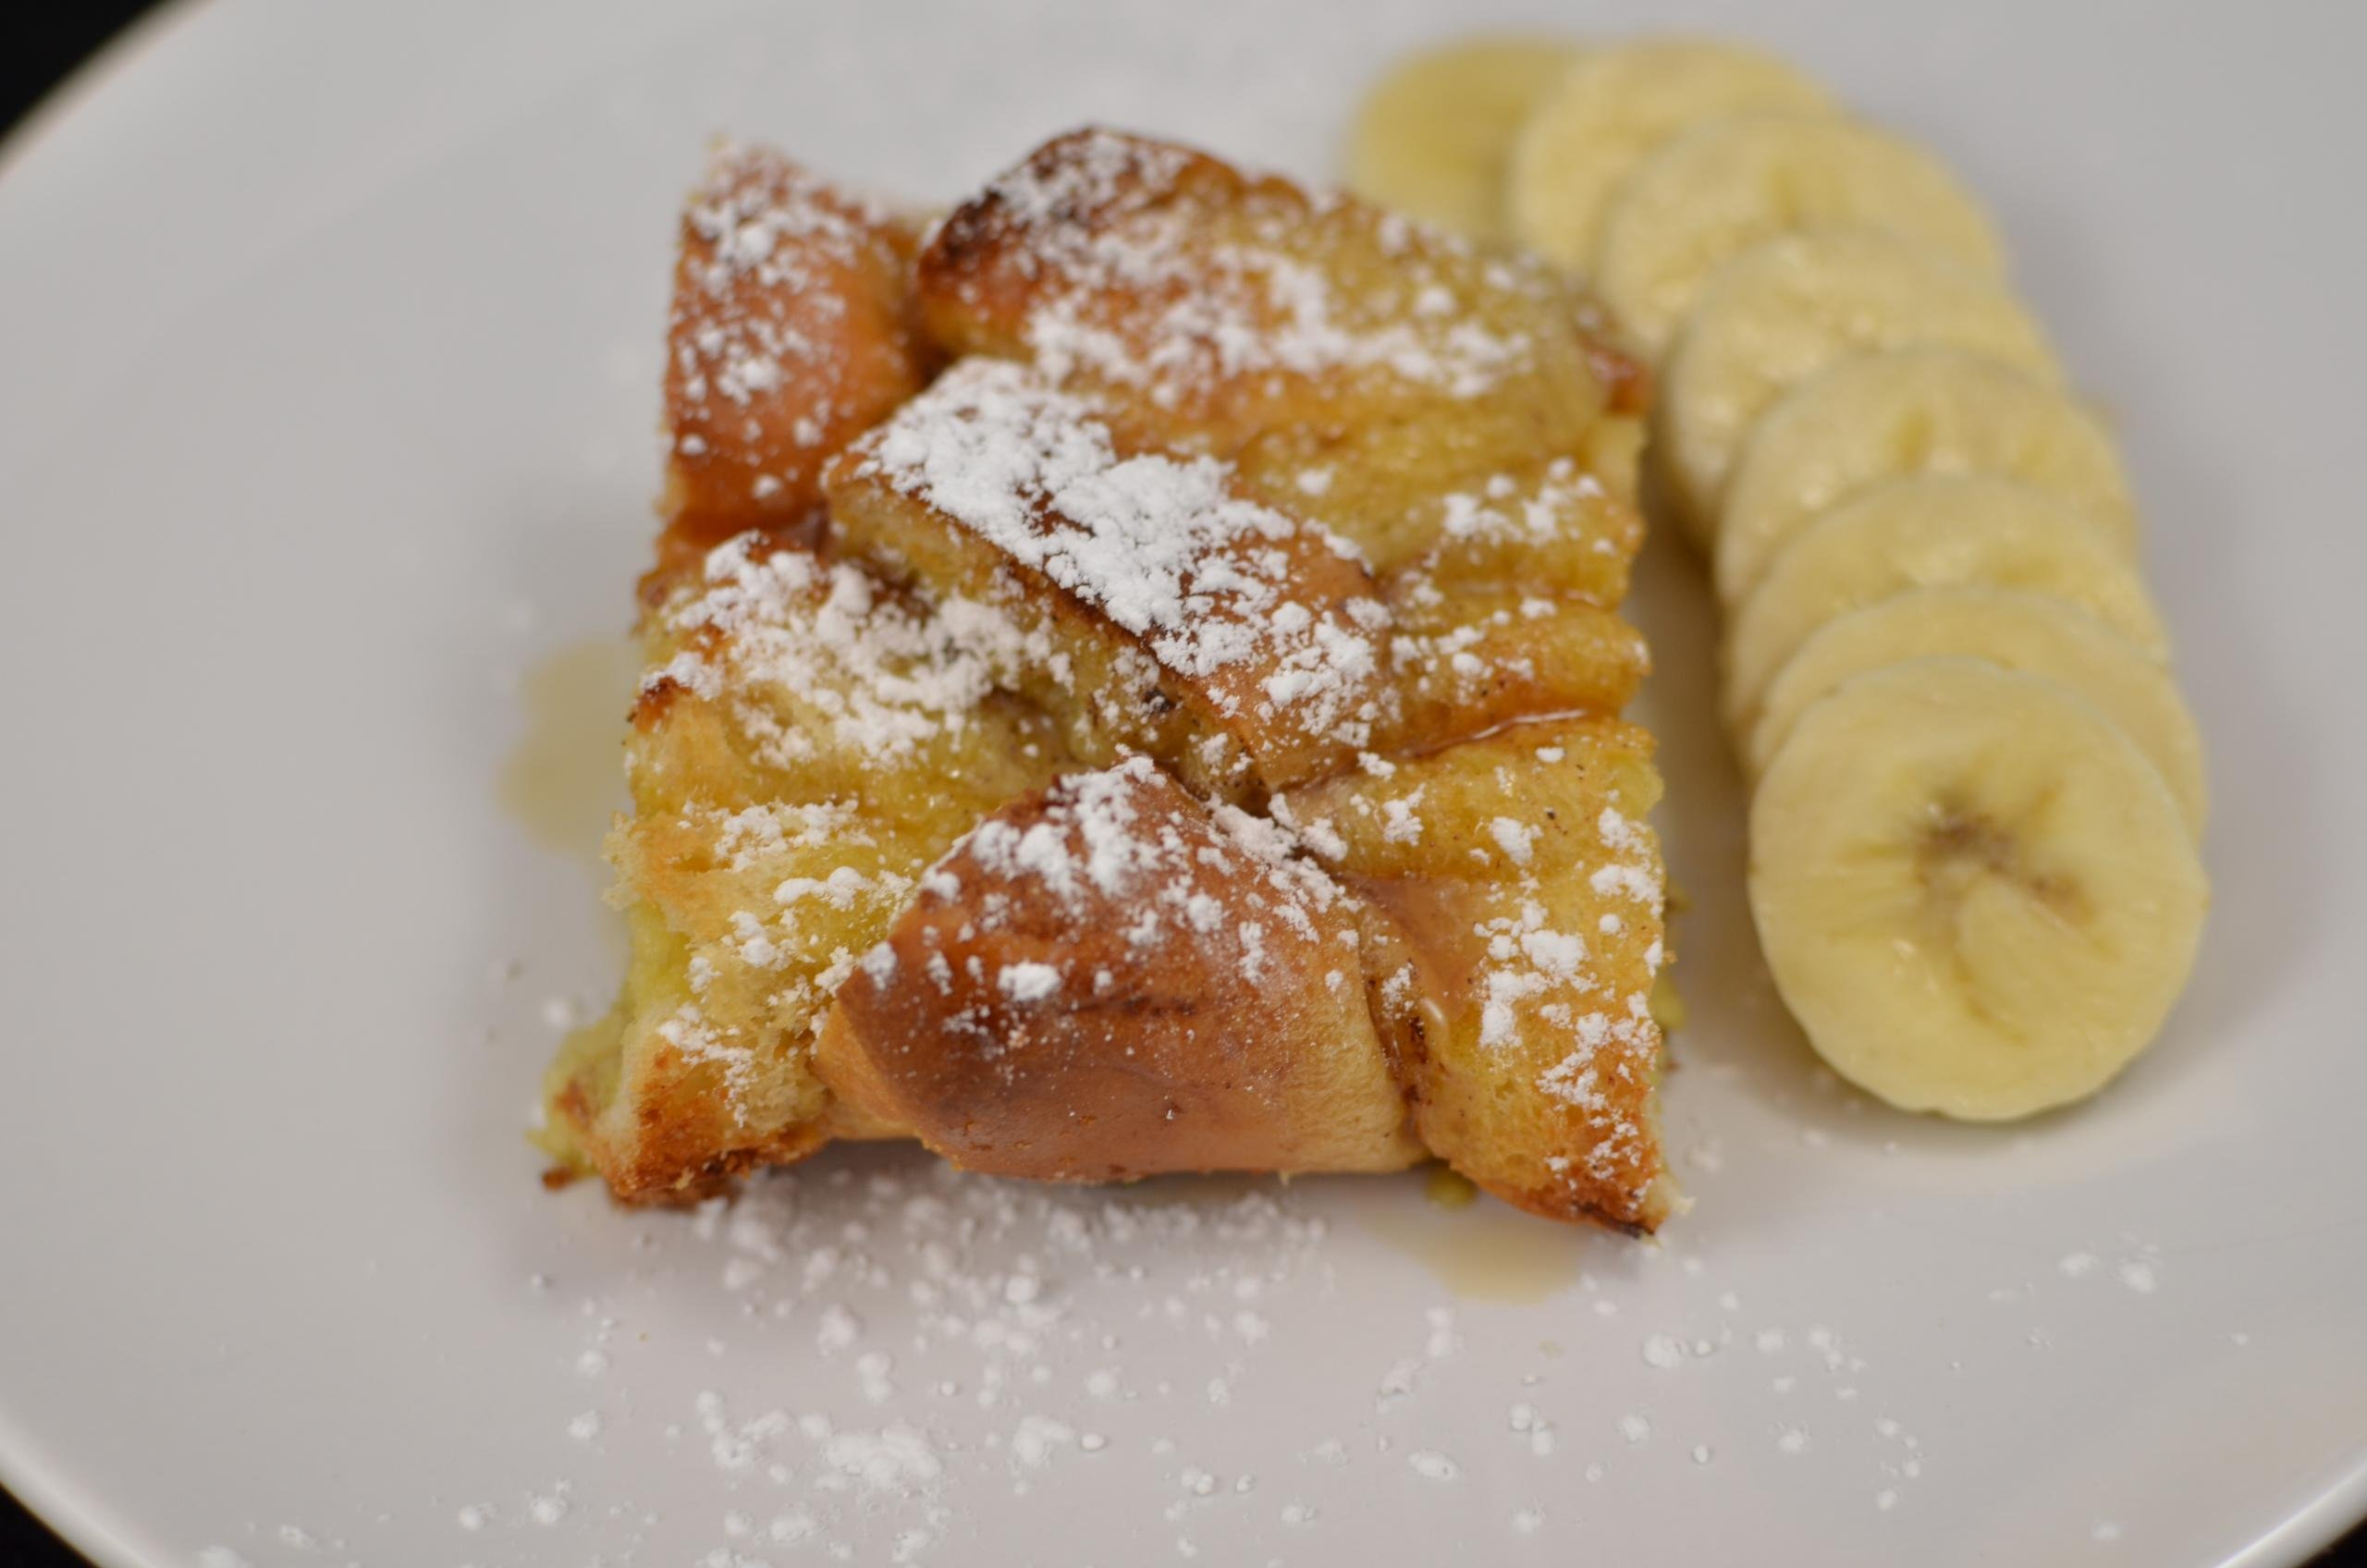 Baked French Toast on a plate with powdered sugar sprinkled on top and a row of banana slices